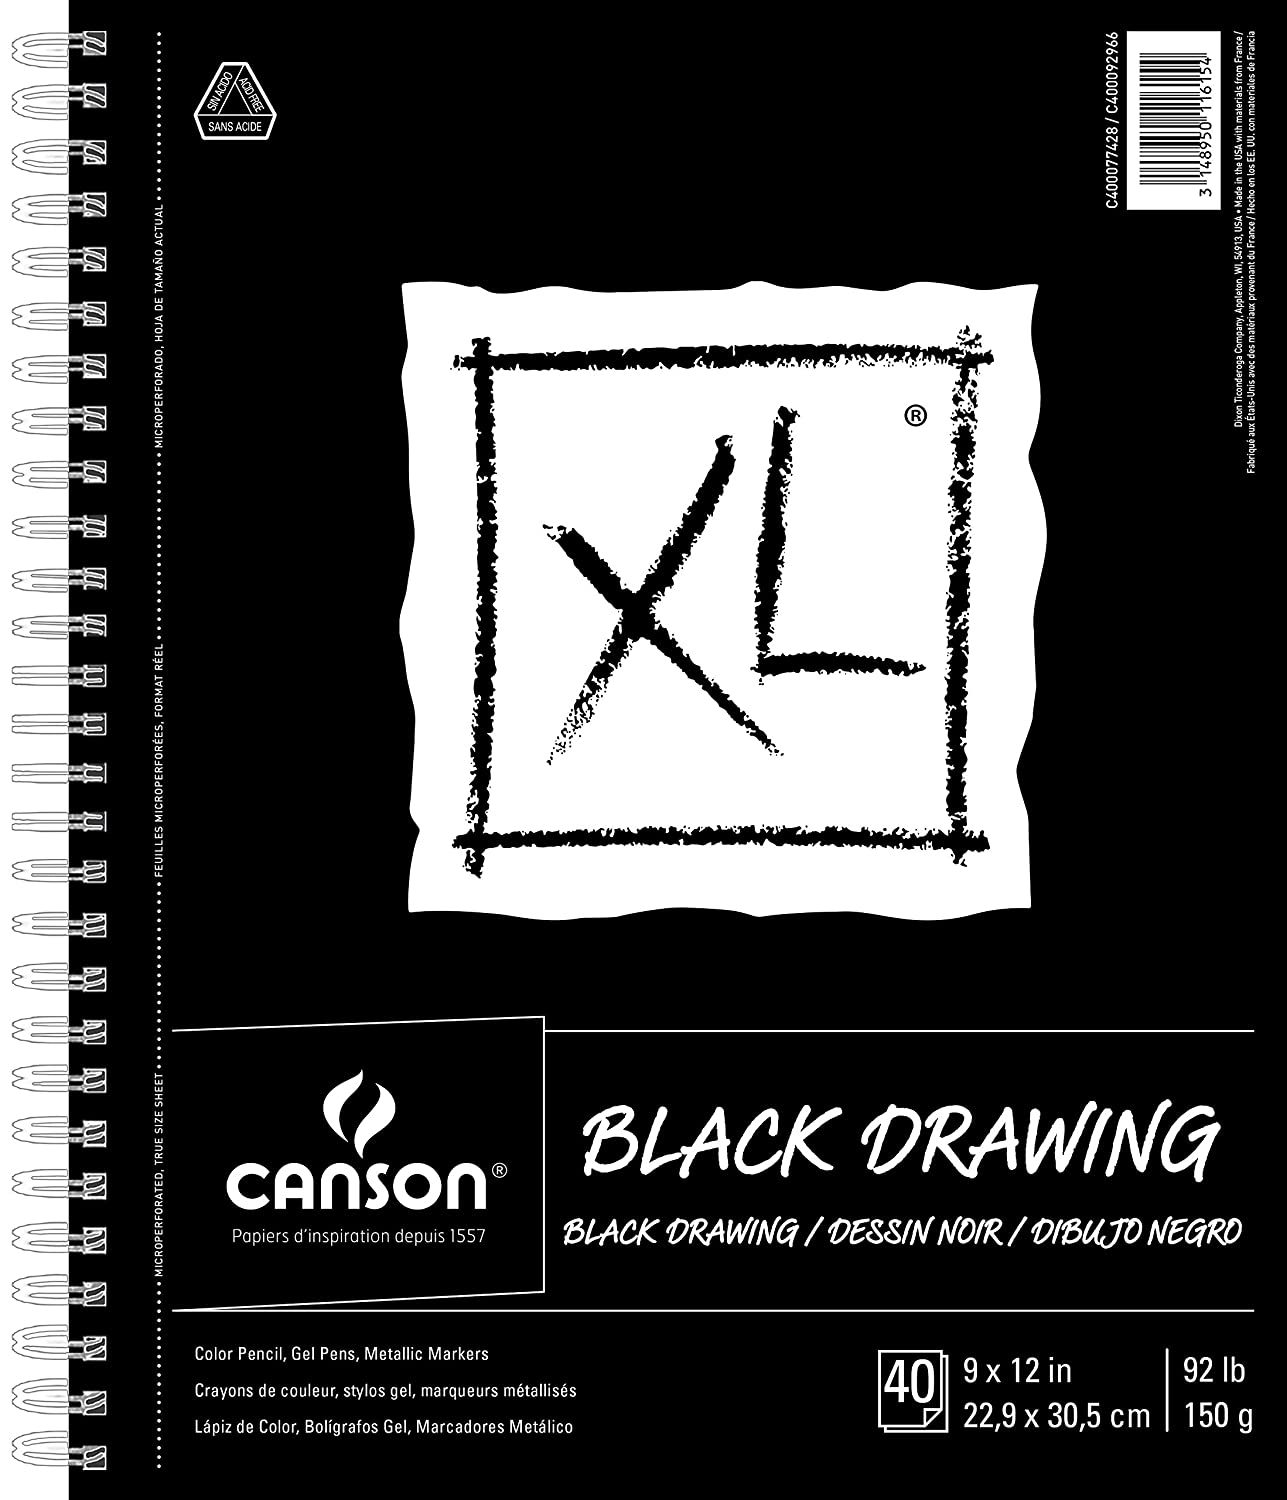 Canson Colorline Black Drawing Notebook